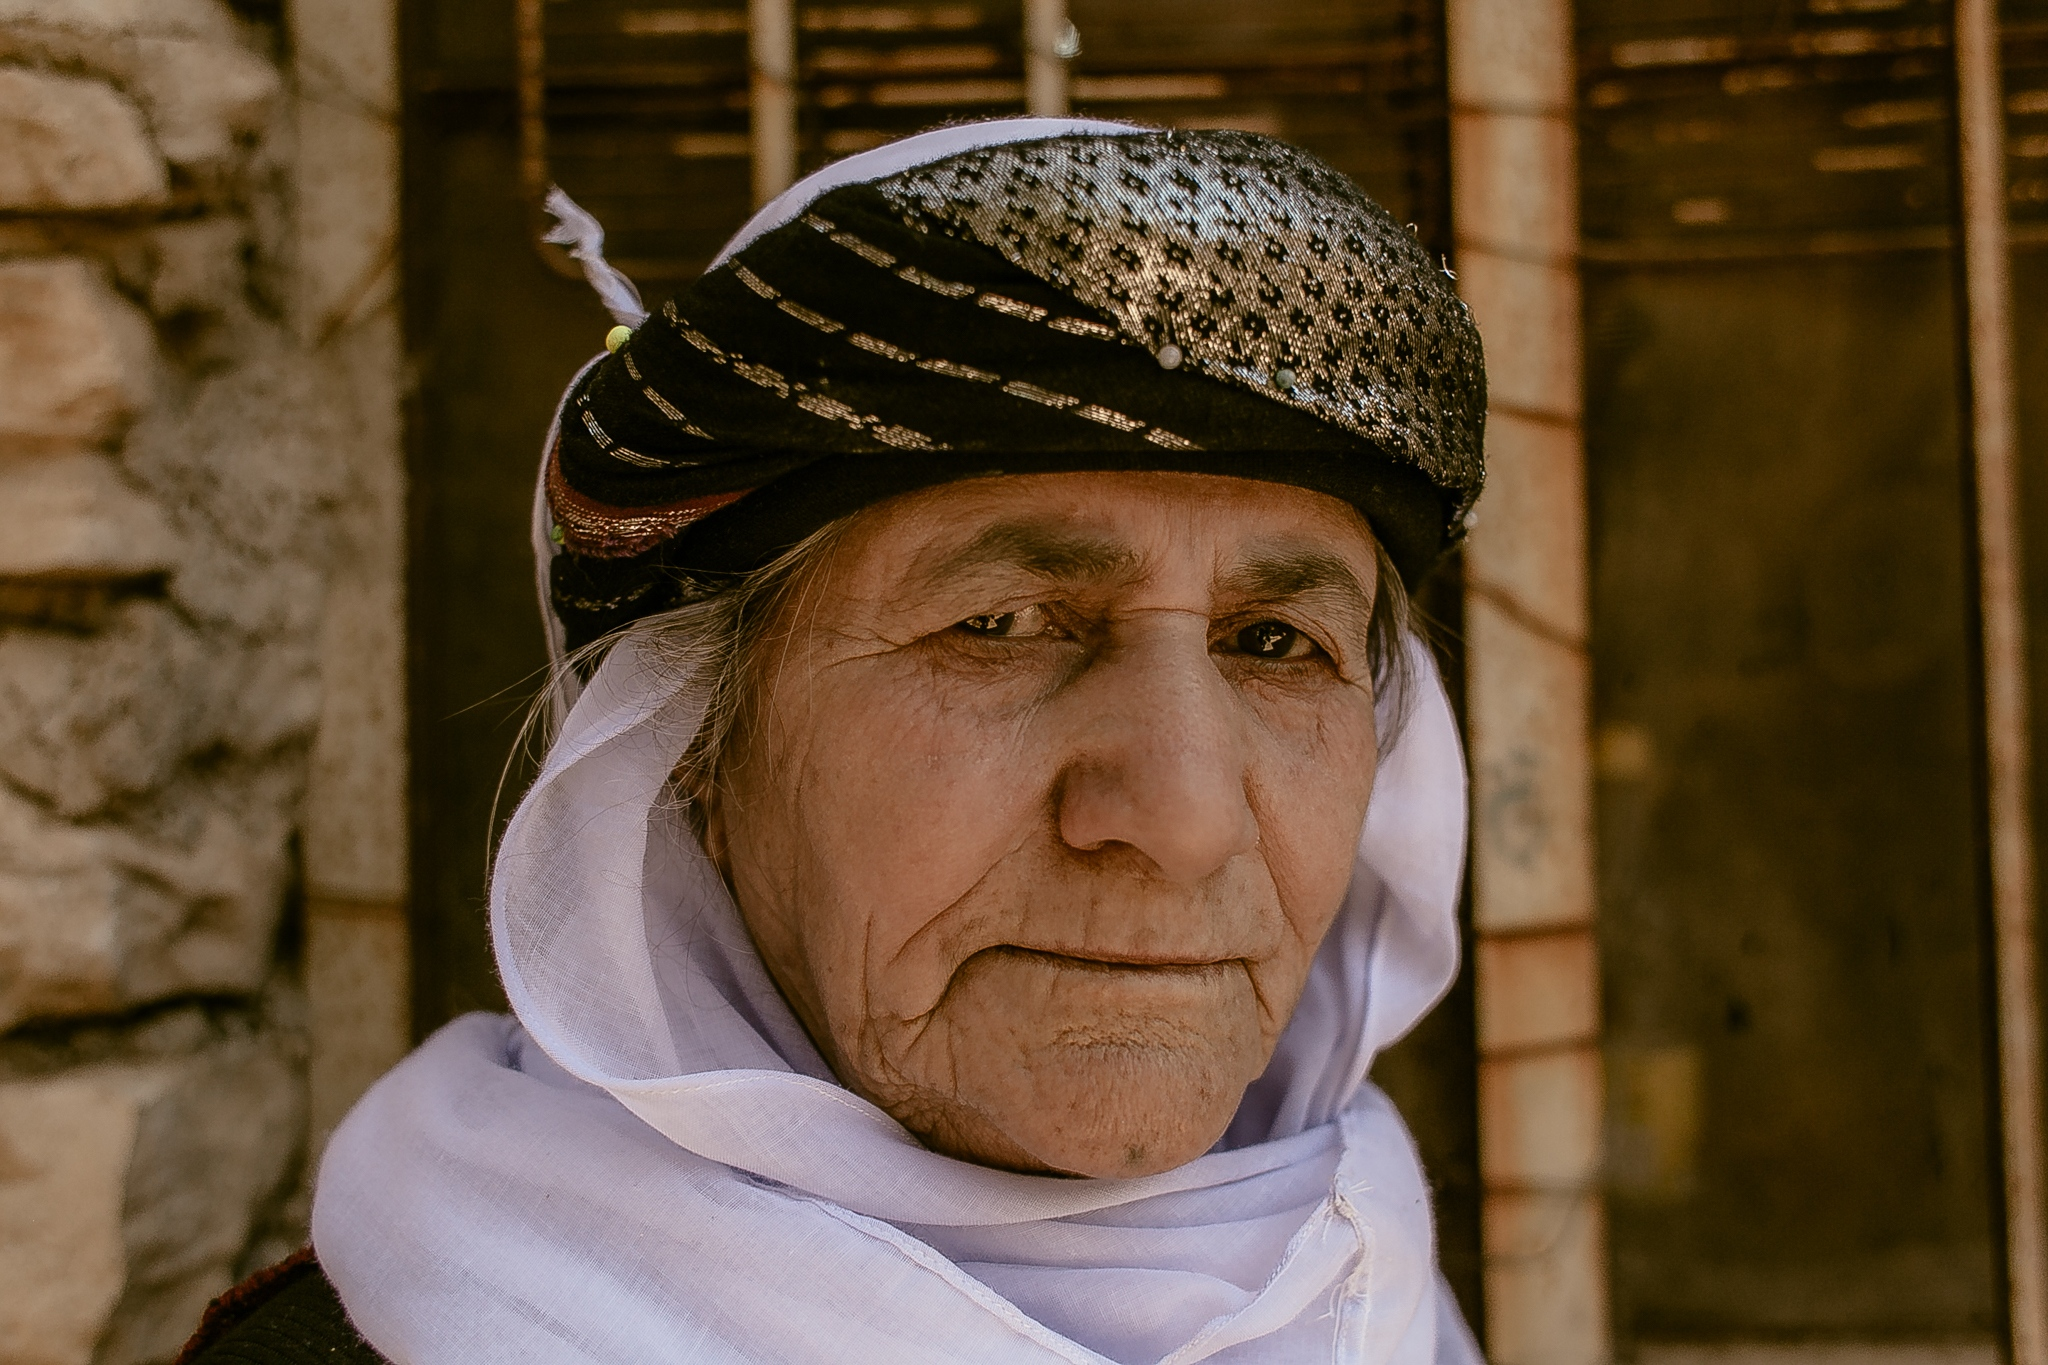 Asmar Asmail, Yazidi's Religious Leader. It is she who does the baptism of every yazidi child and also of the women who need a new baptism after the years of captivity under the Islamic State.